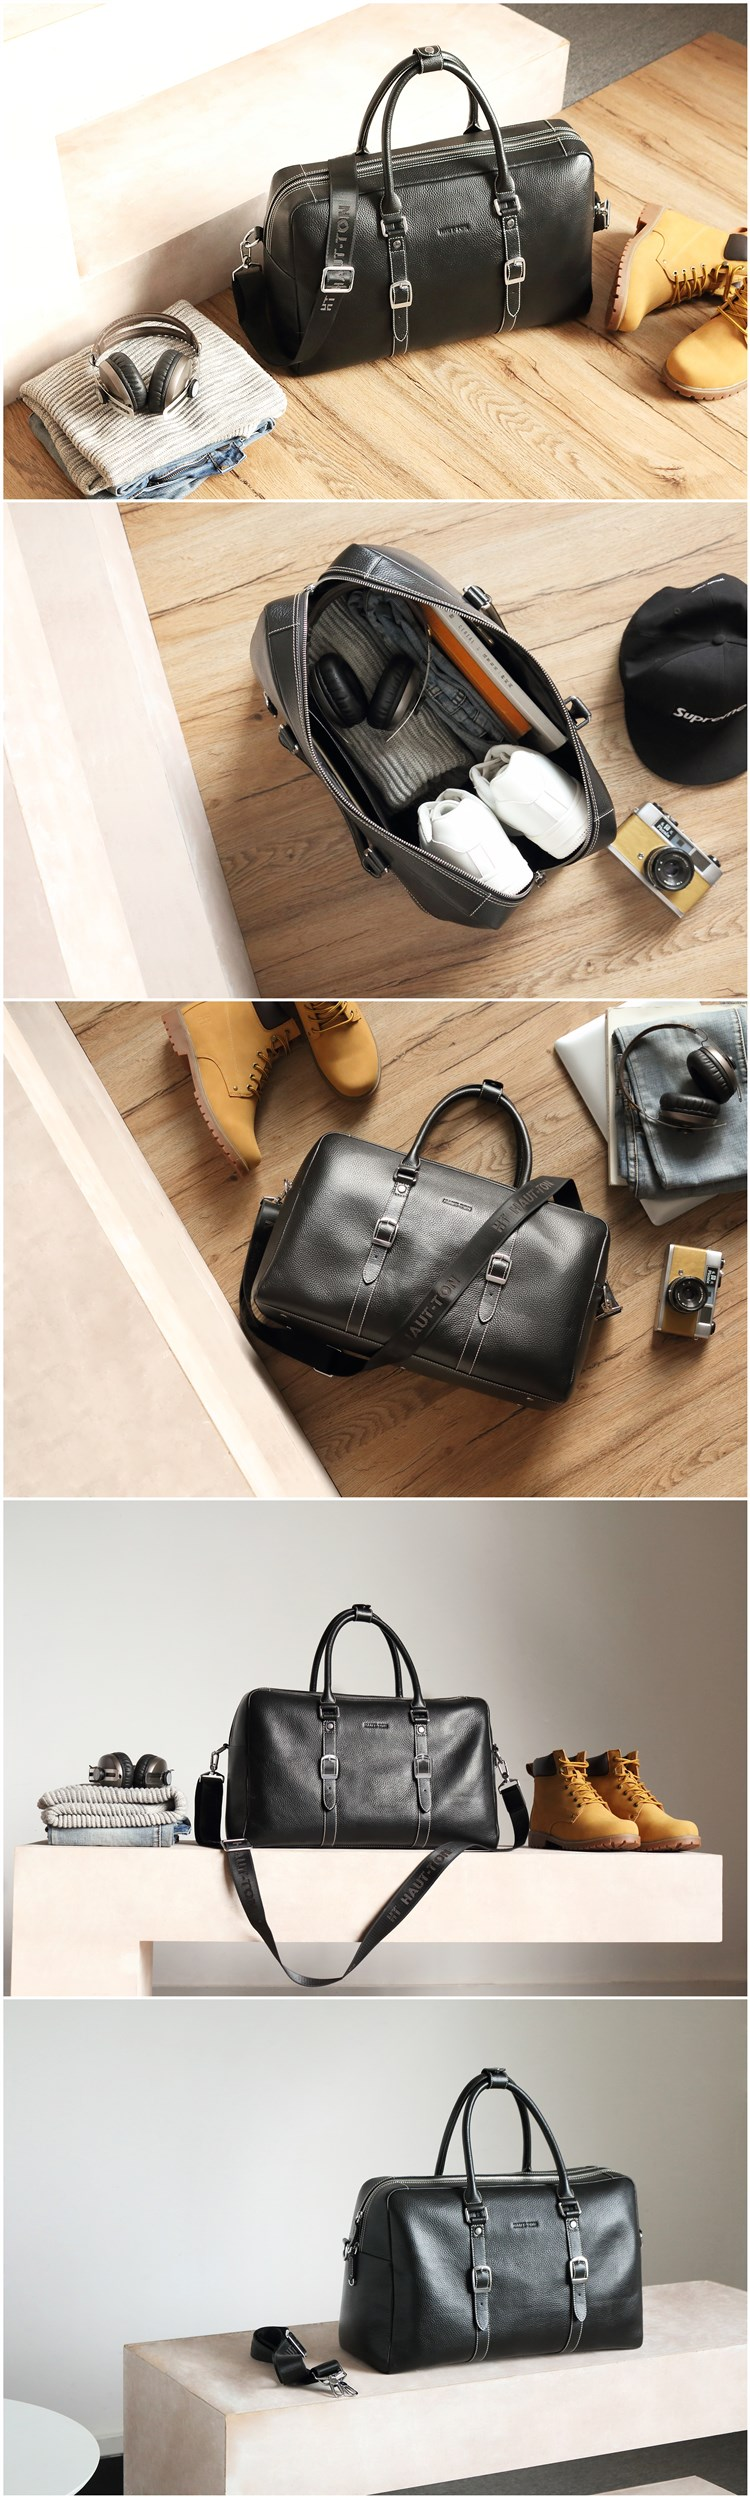 Hautton Popular Compatible Quality Top Leather Travel Duffel Luggage Bag leather men briefcase